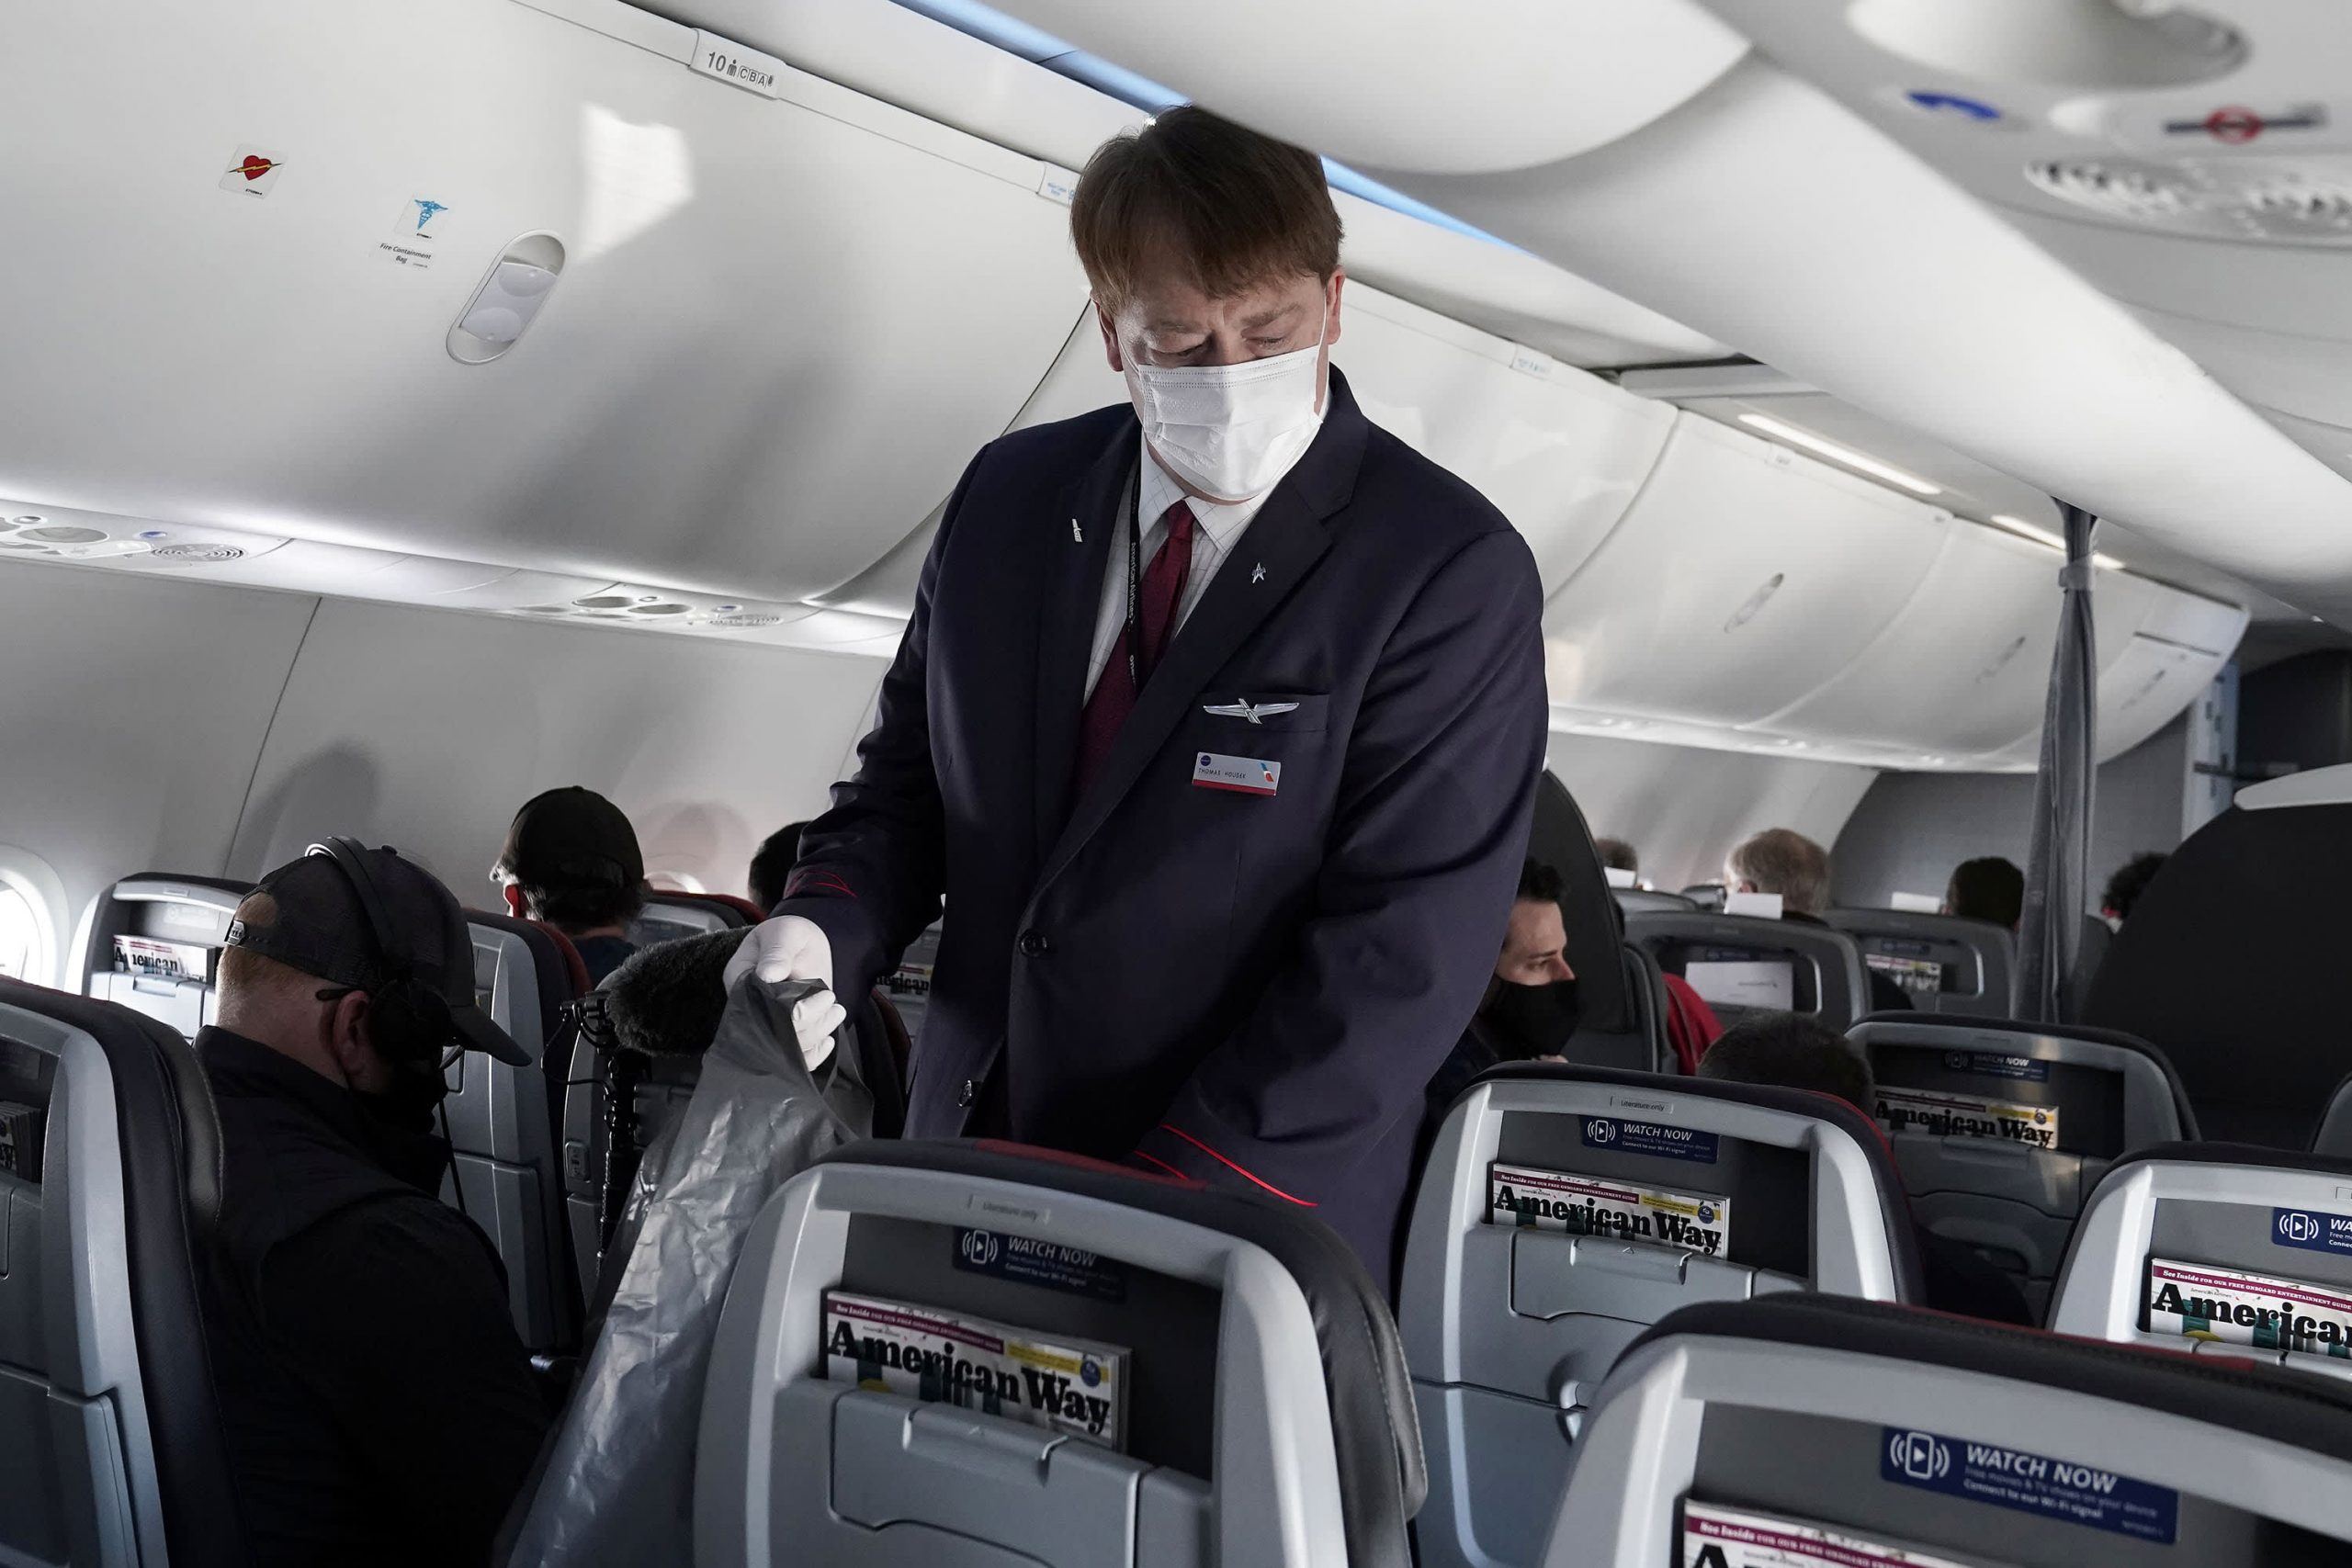 faa-chief-issues-stern-warning-to-travelers-after-politically-motived-flight-disruptions